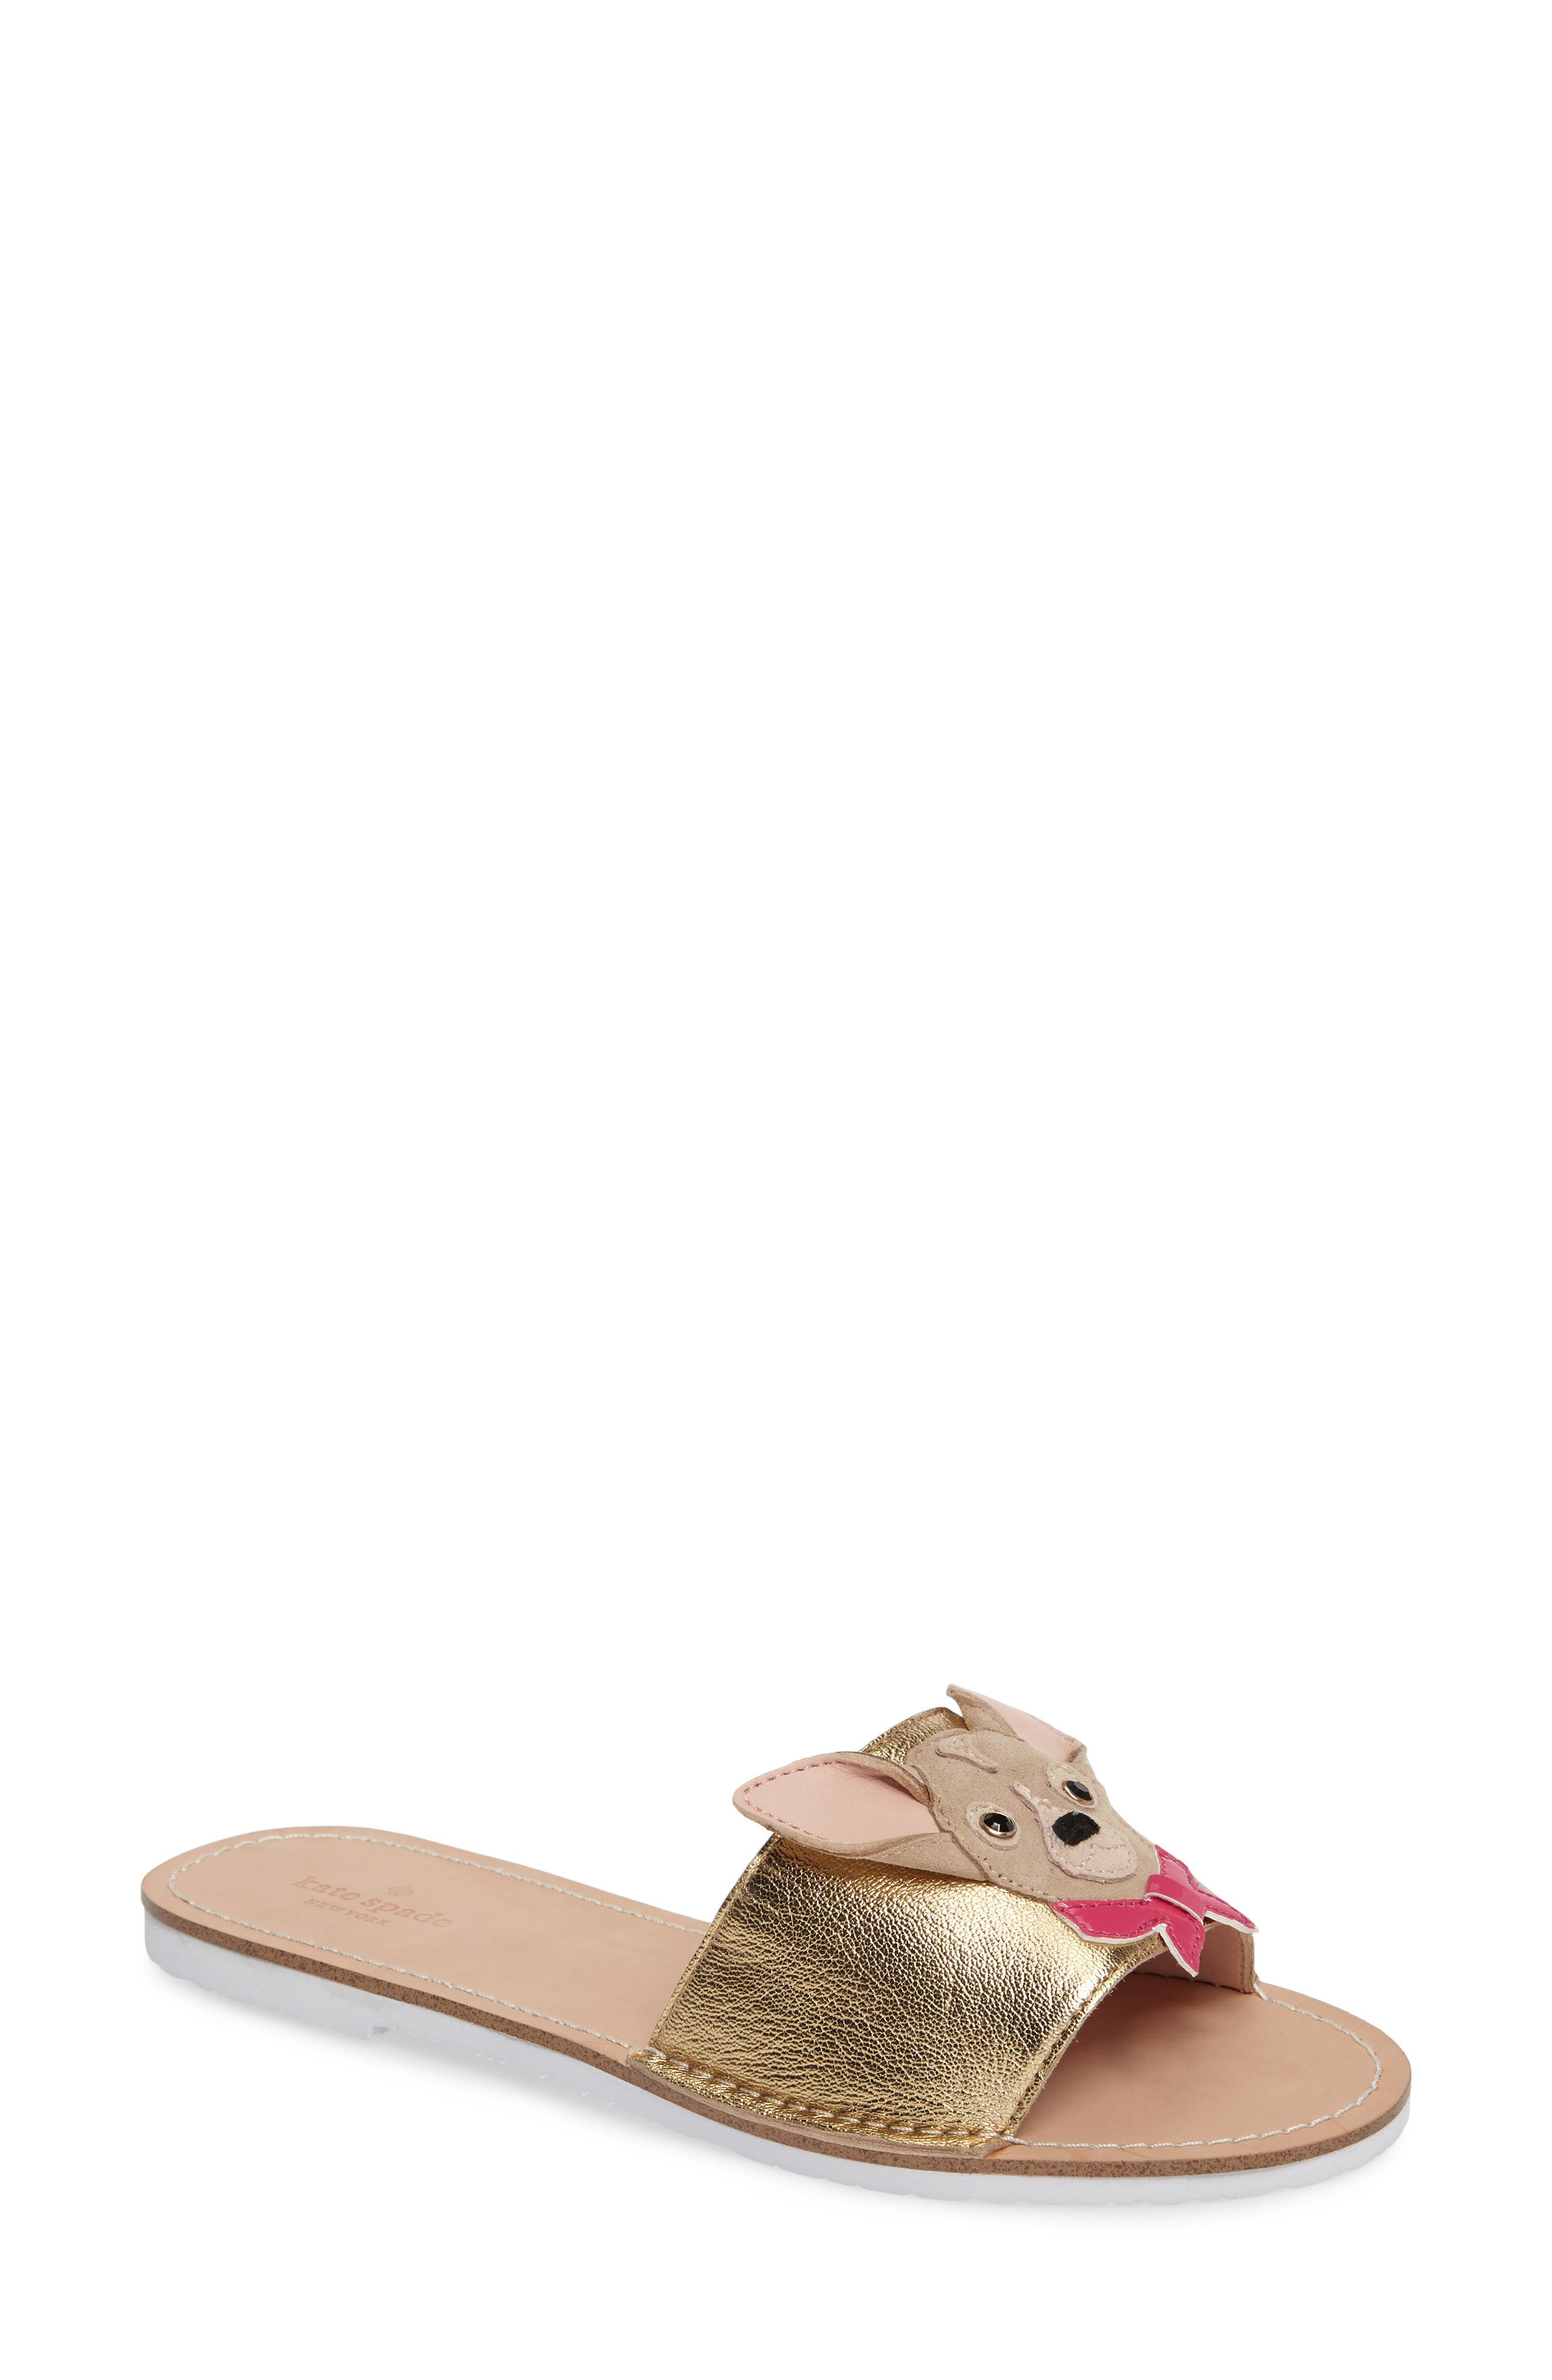 Alternate Image 1 Selected - kate spade new york isadore chihuahua slide sandal (Women)